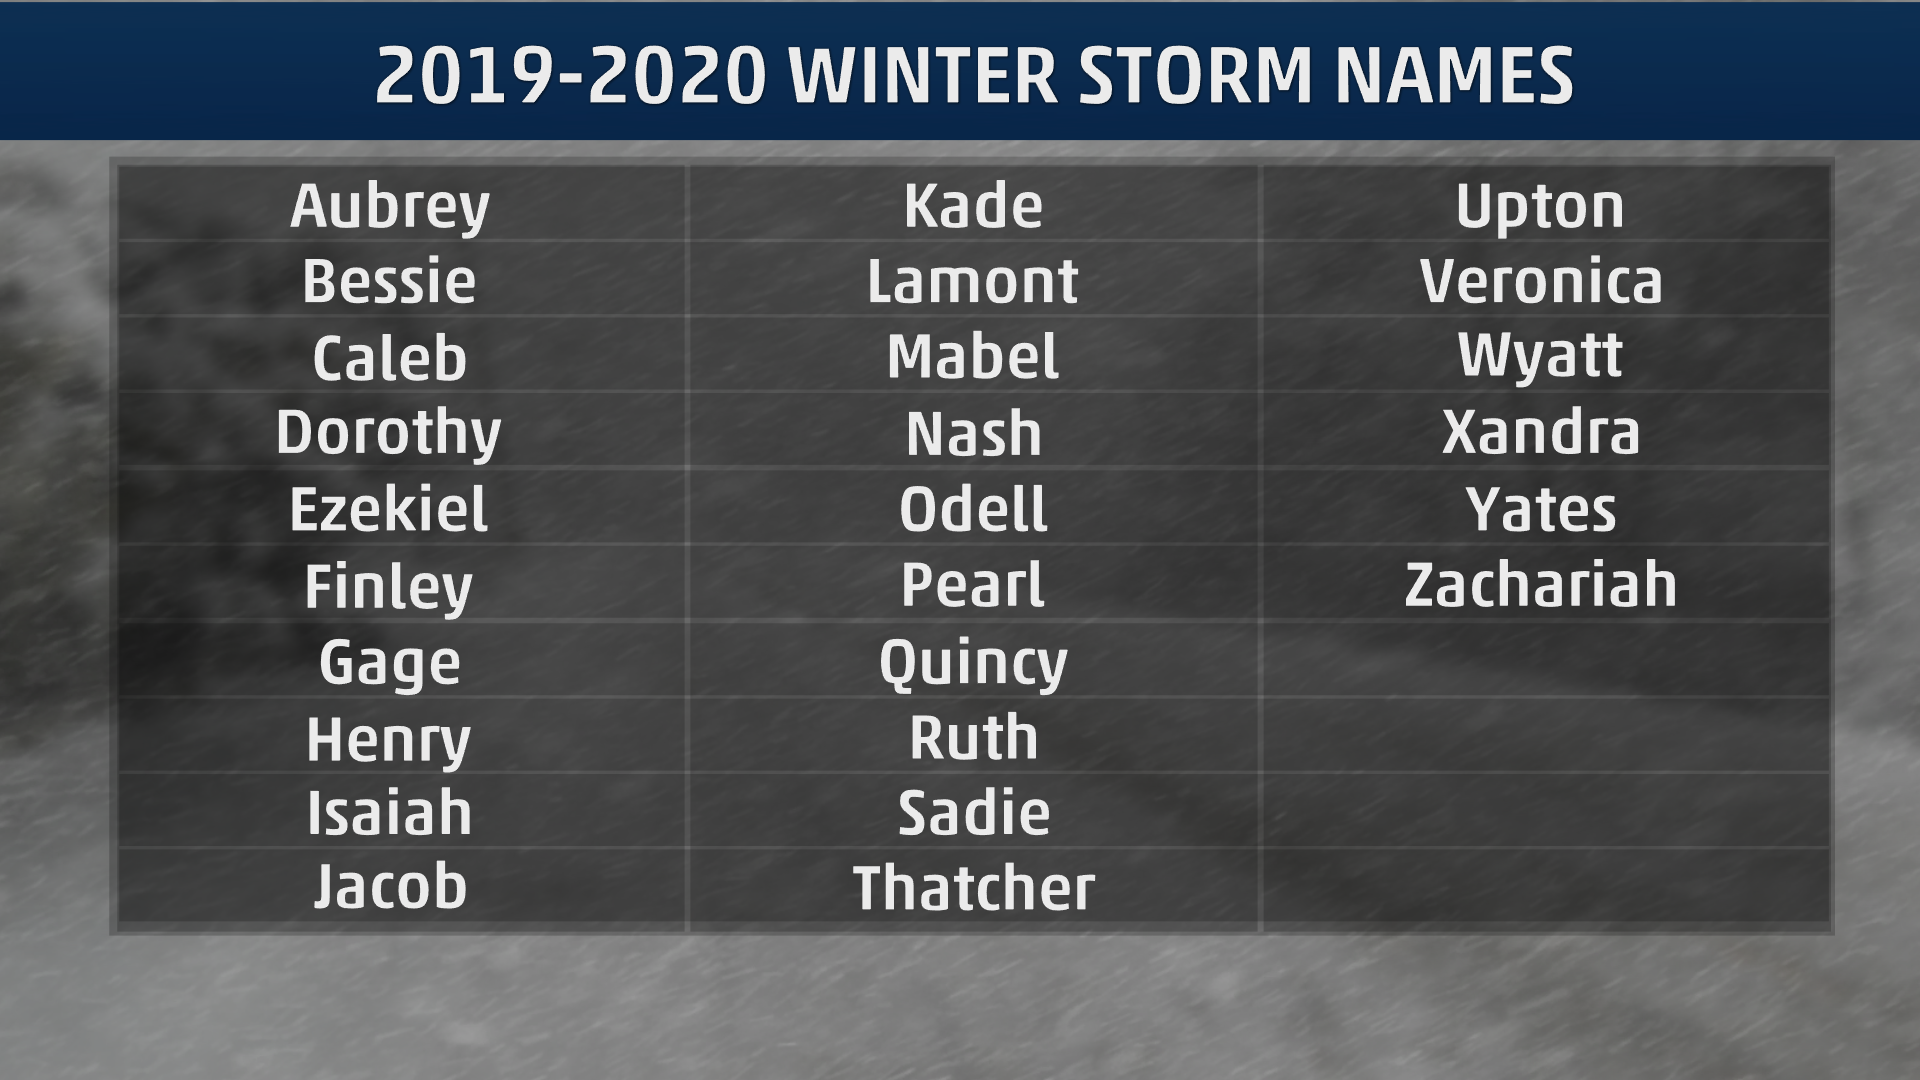 List Of Hurricanes 2020.Winter Storm Names For 2019 20 Revealed The Weather Channel